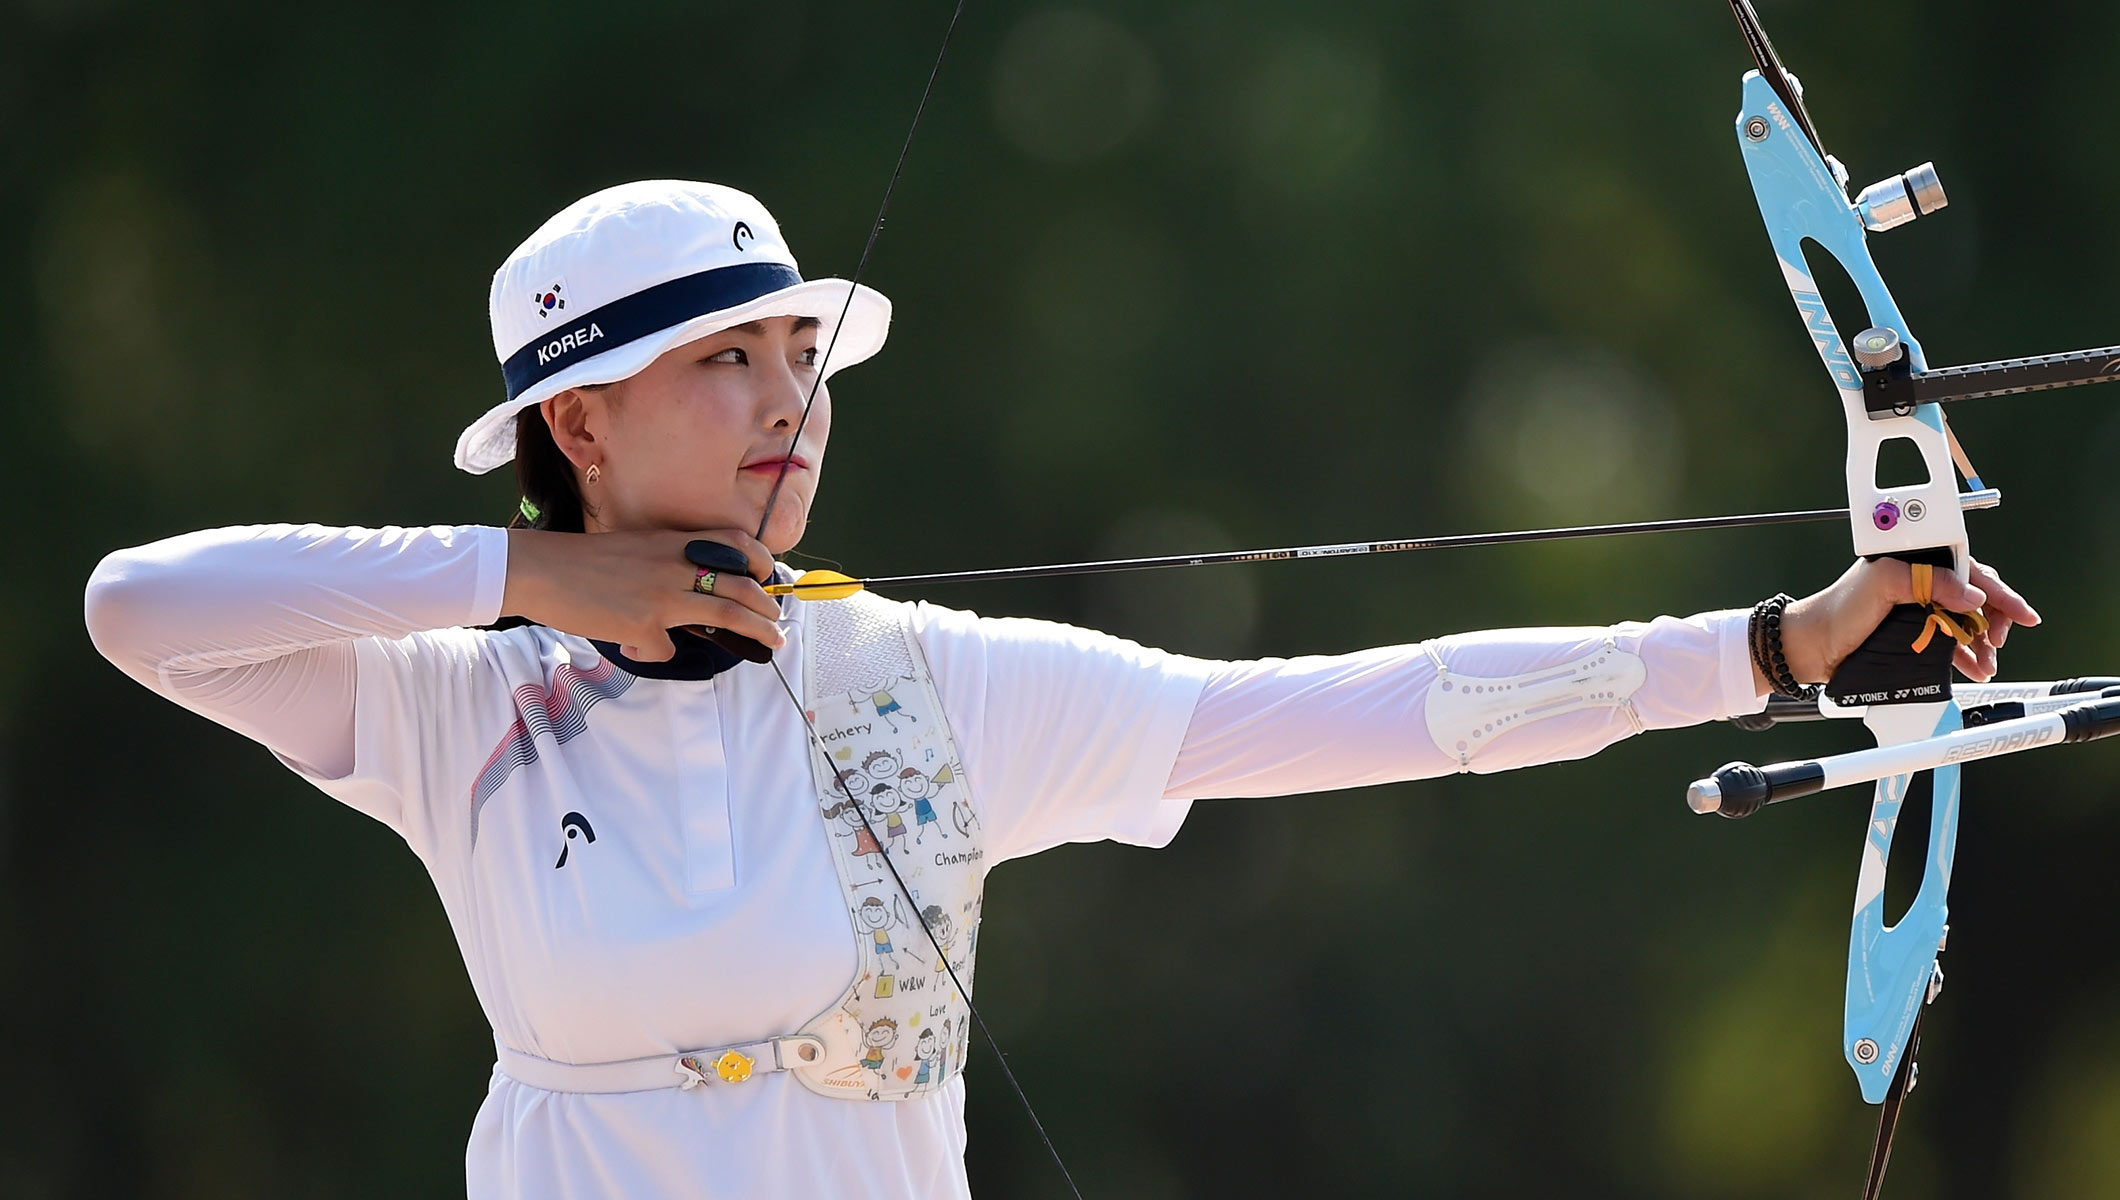 Korean archers suggest further dominance at Tokyo 2020 test event